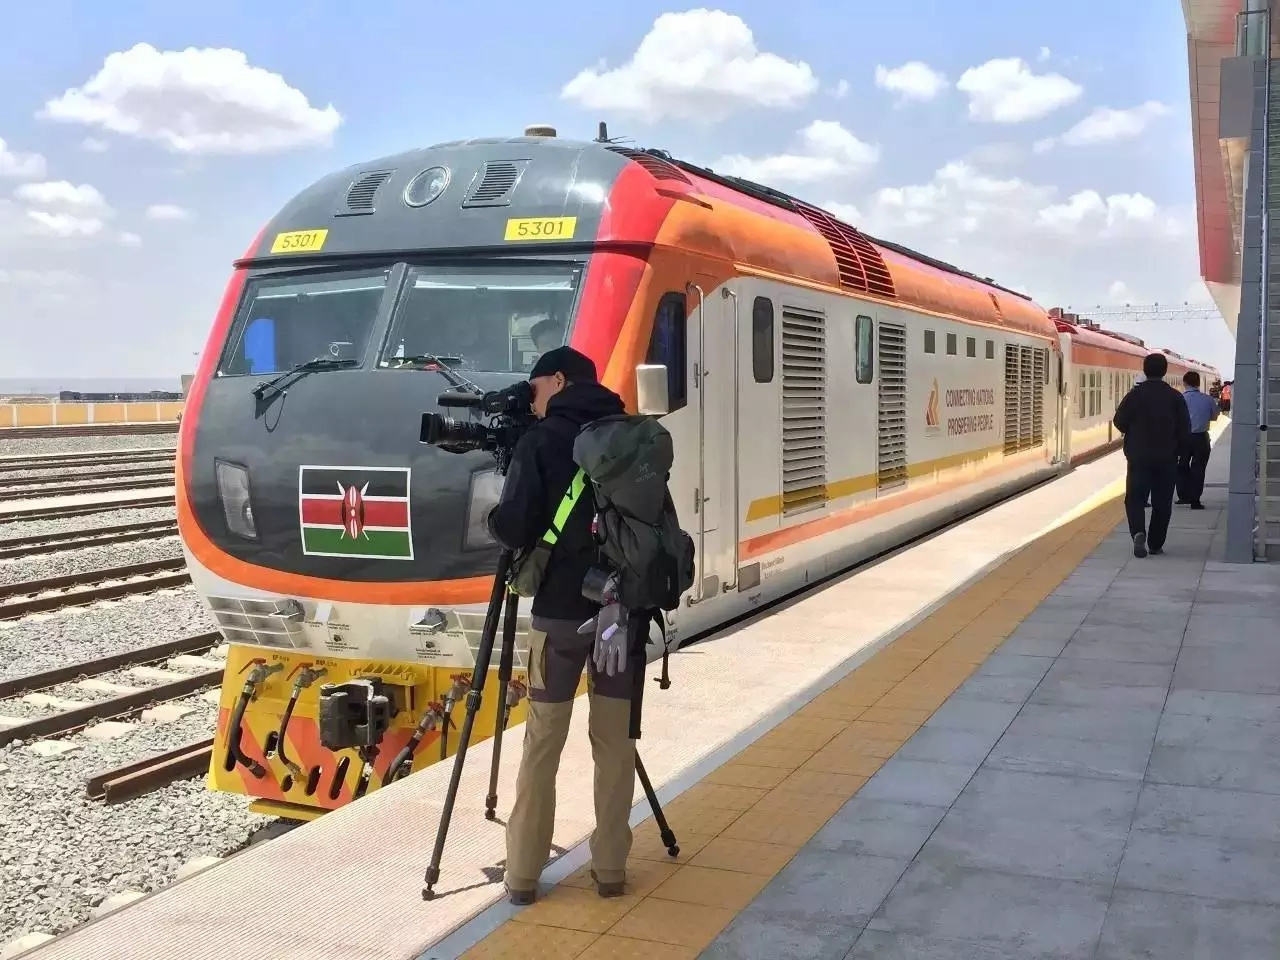 Local and foreign JOURNALISTS left mouths open after SGR ride